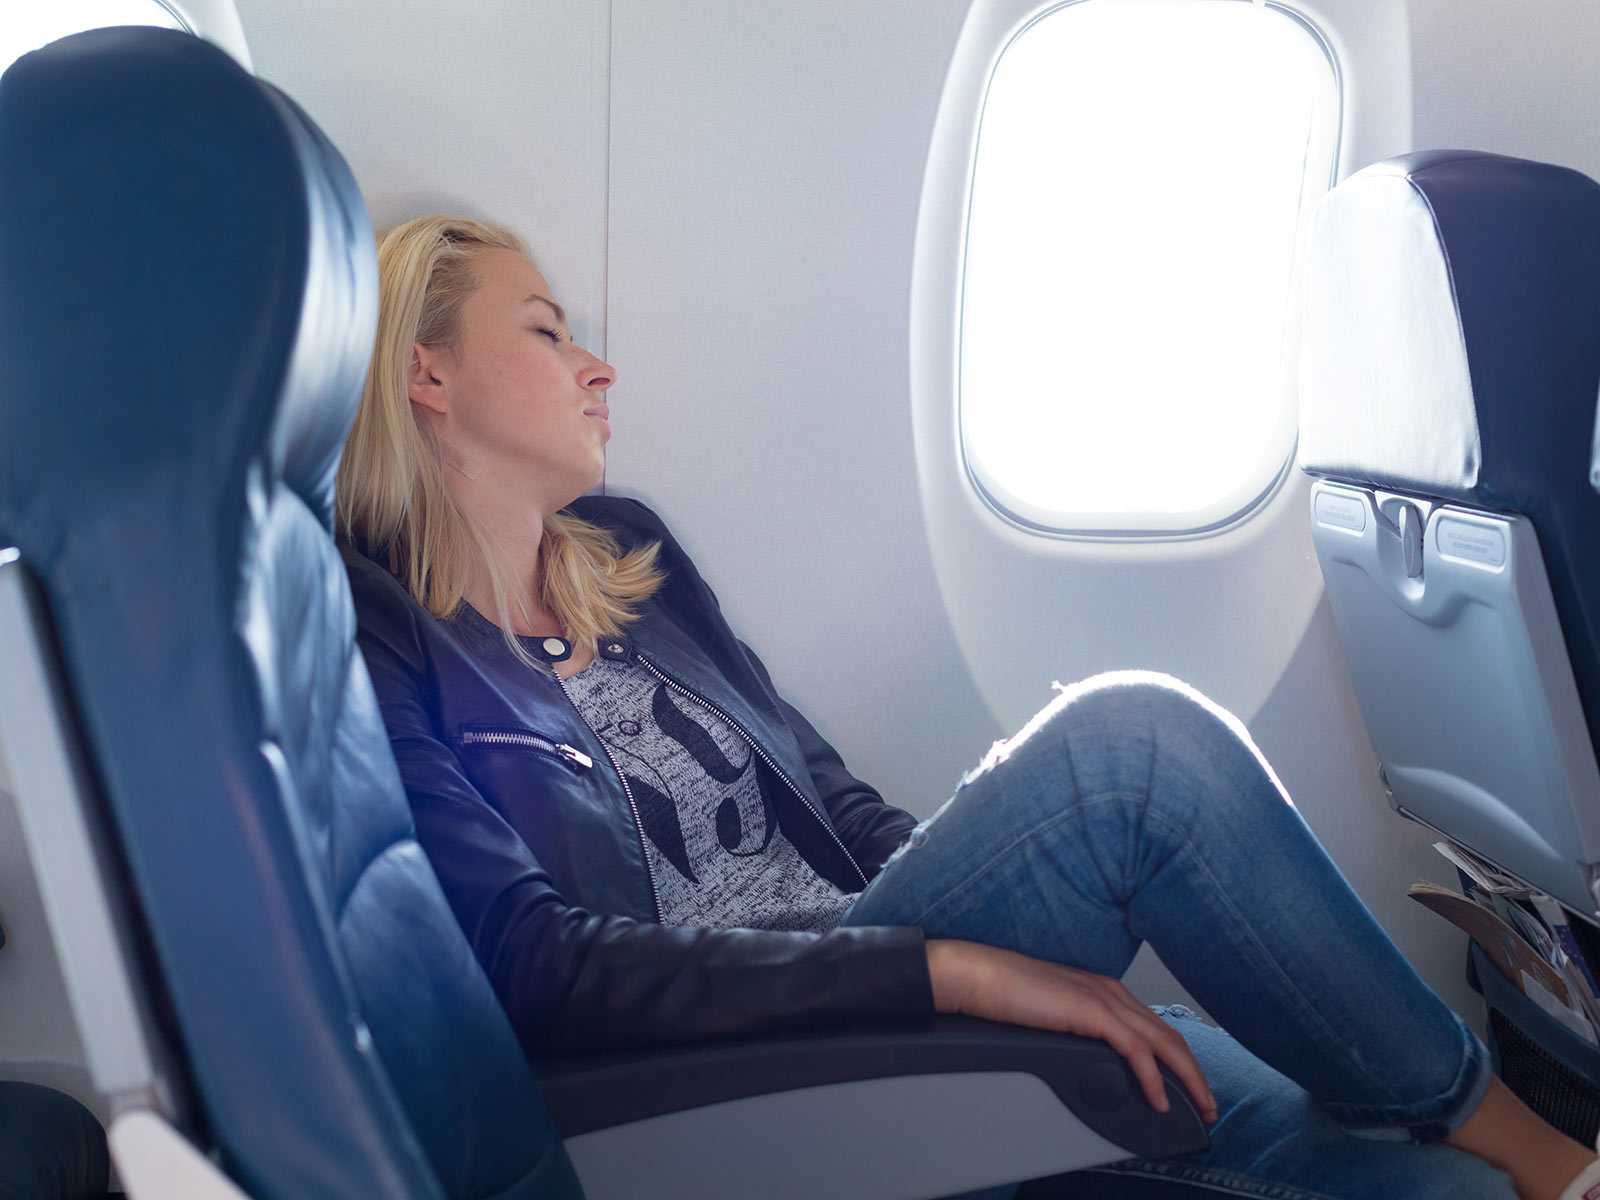 9 ways to make your economy flight more comfortable